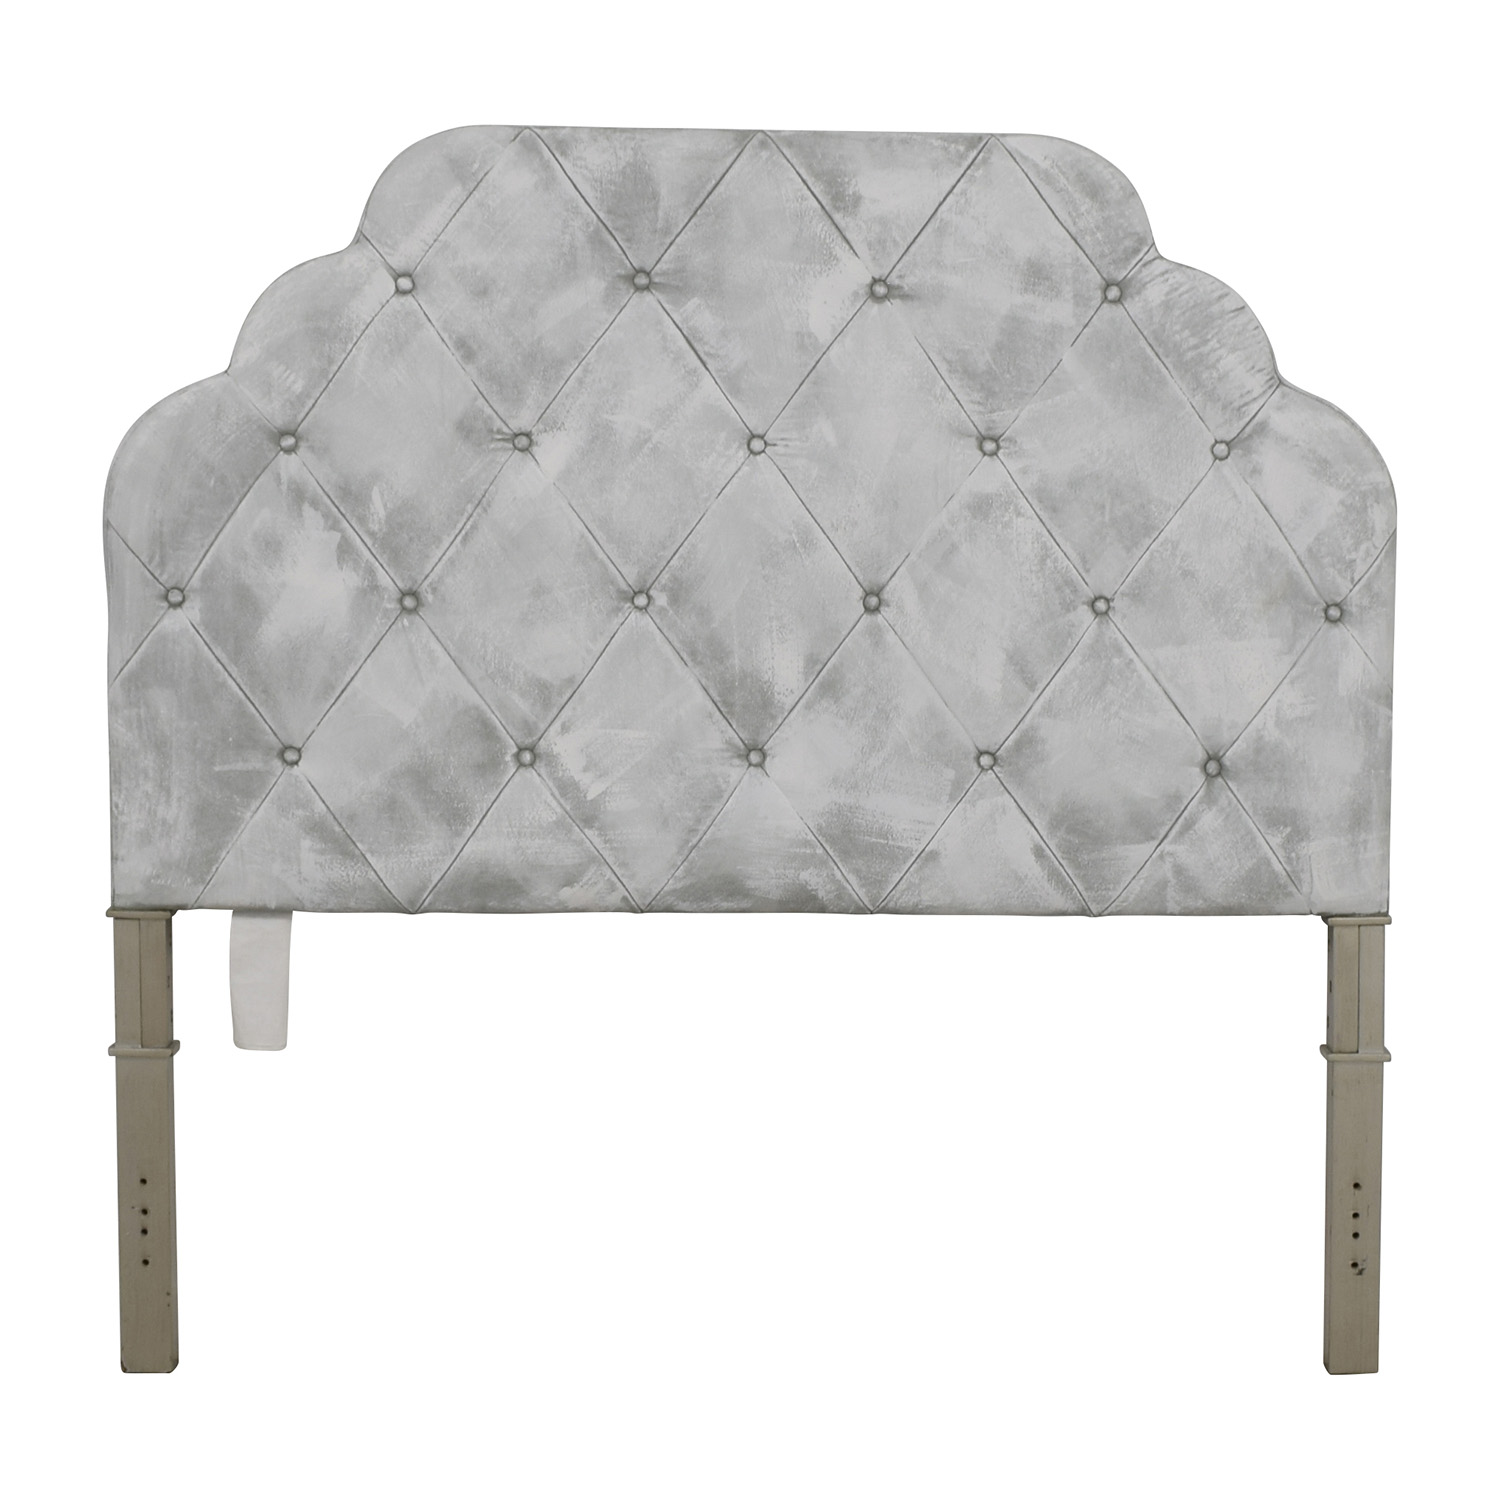 Remarkable 78 Off Pier 1 Pier 1 Imports White Painted Queen Headboard Beds Ibusinesslaw Wood Chair Design Ideas Ibusinesslaworg